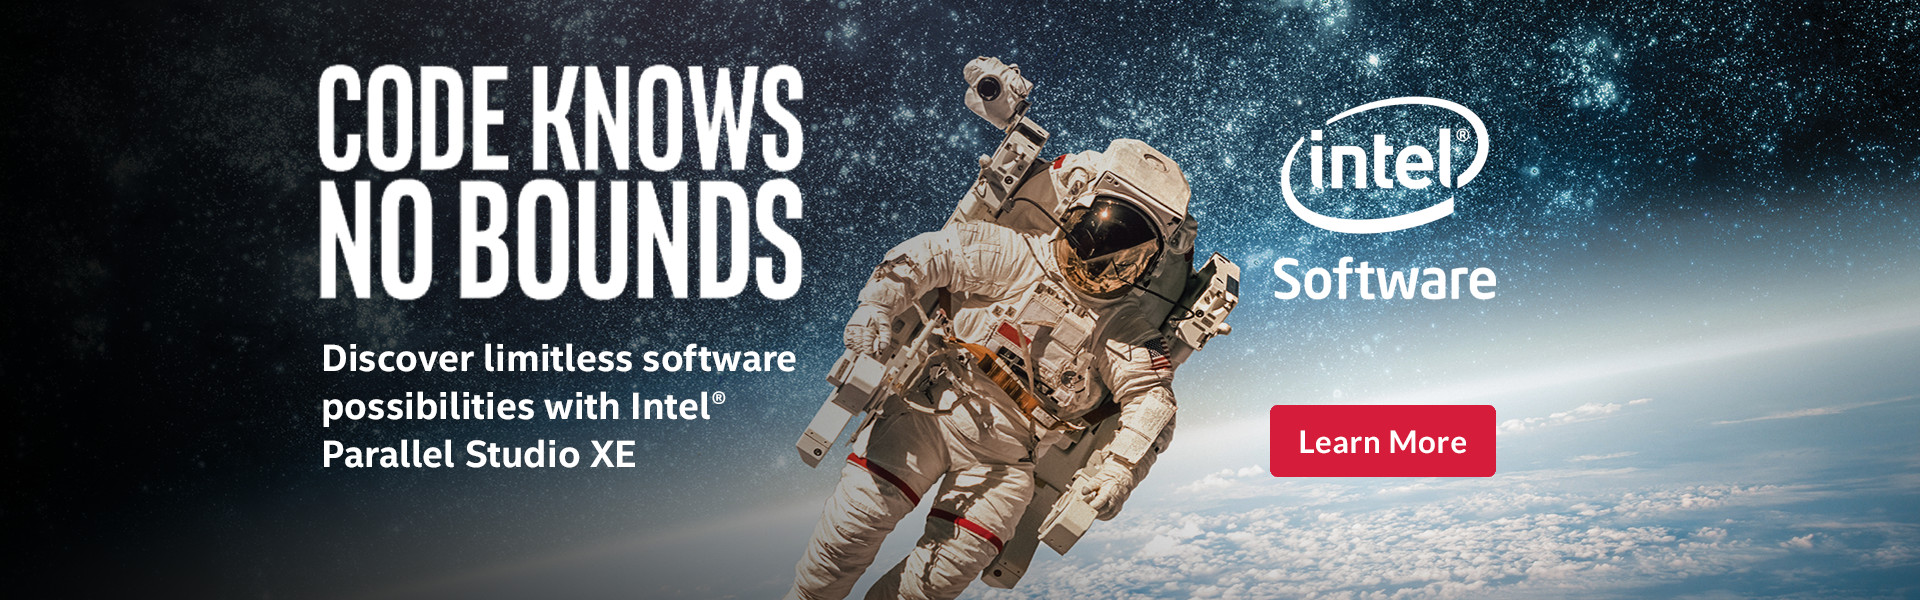 Person in space with text: Intel Software - Discover limitless software possibilities with Intel Parallel Studios XE